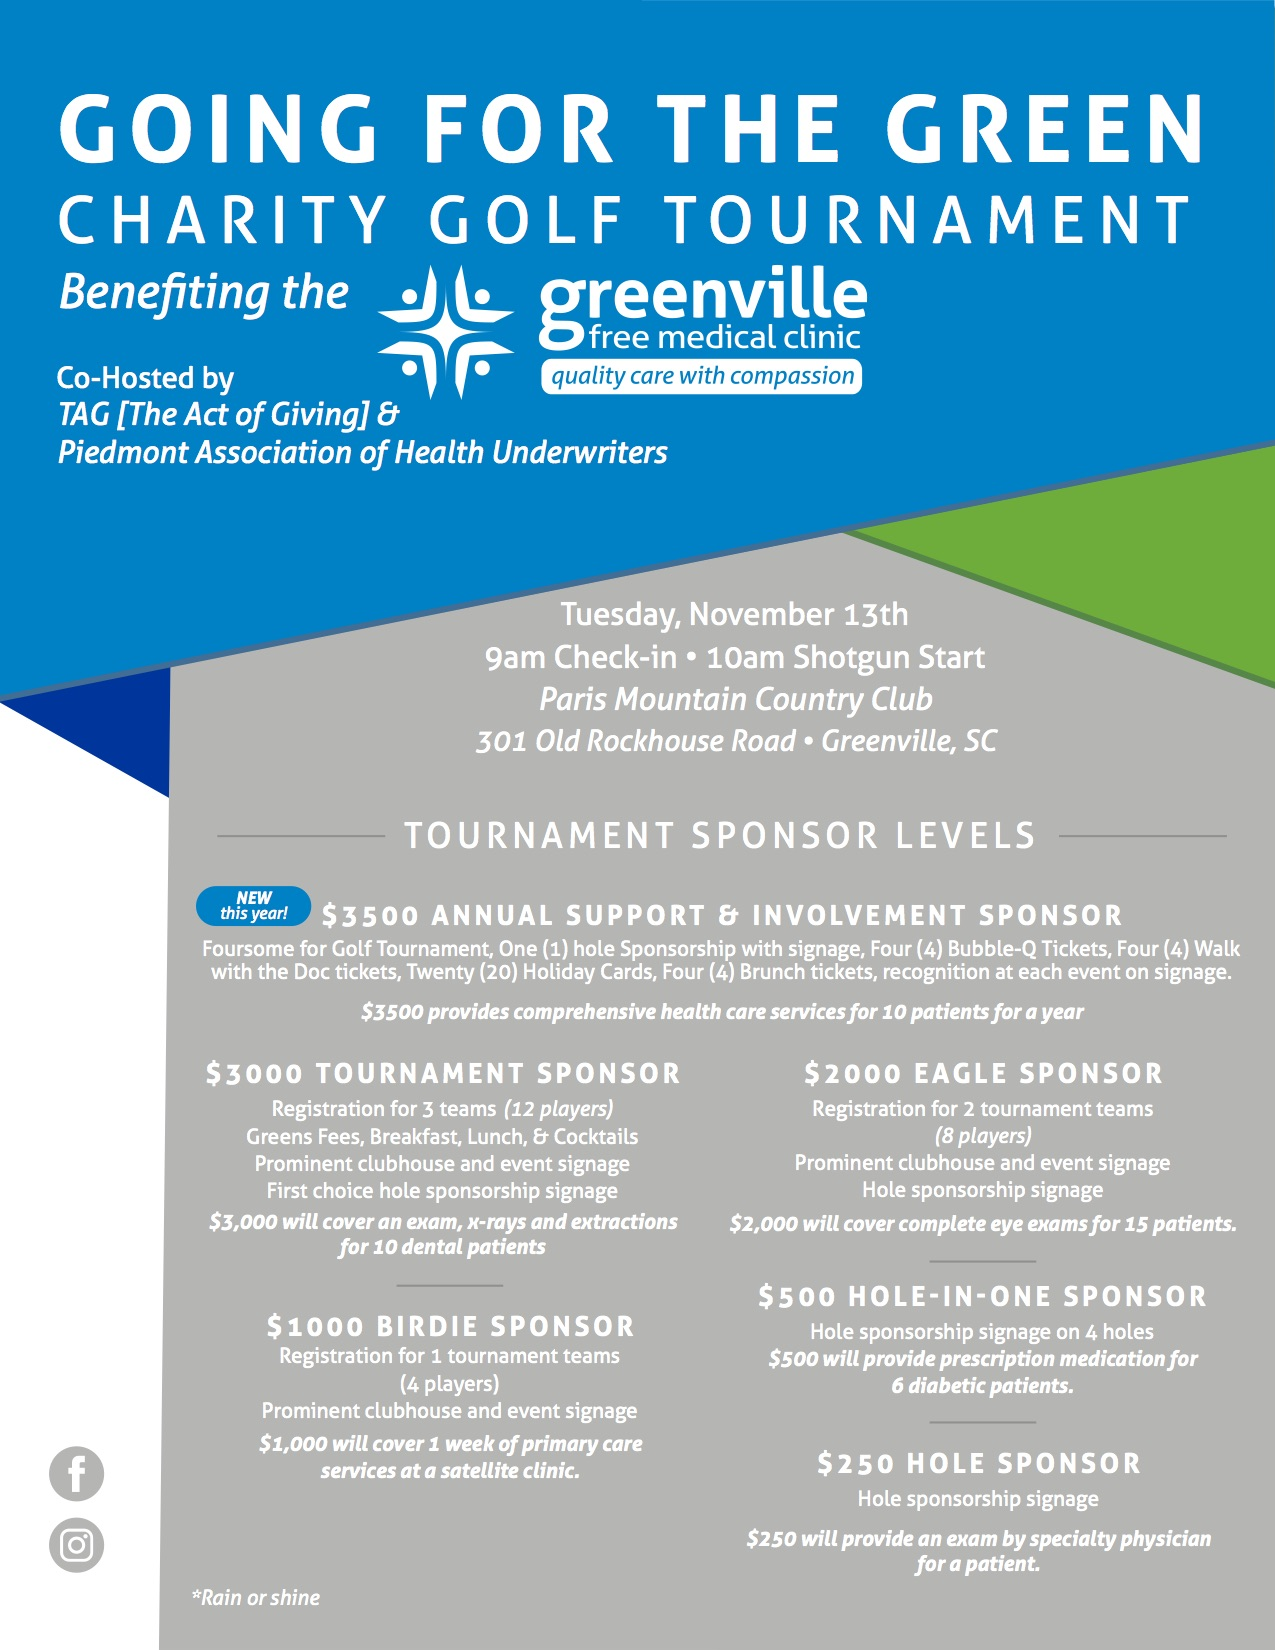 Greenville Charity Golf Tournament